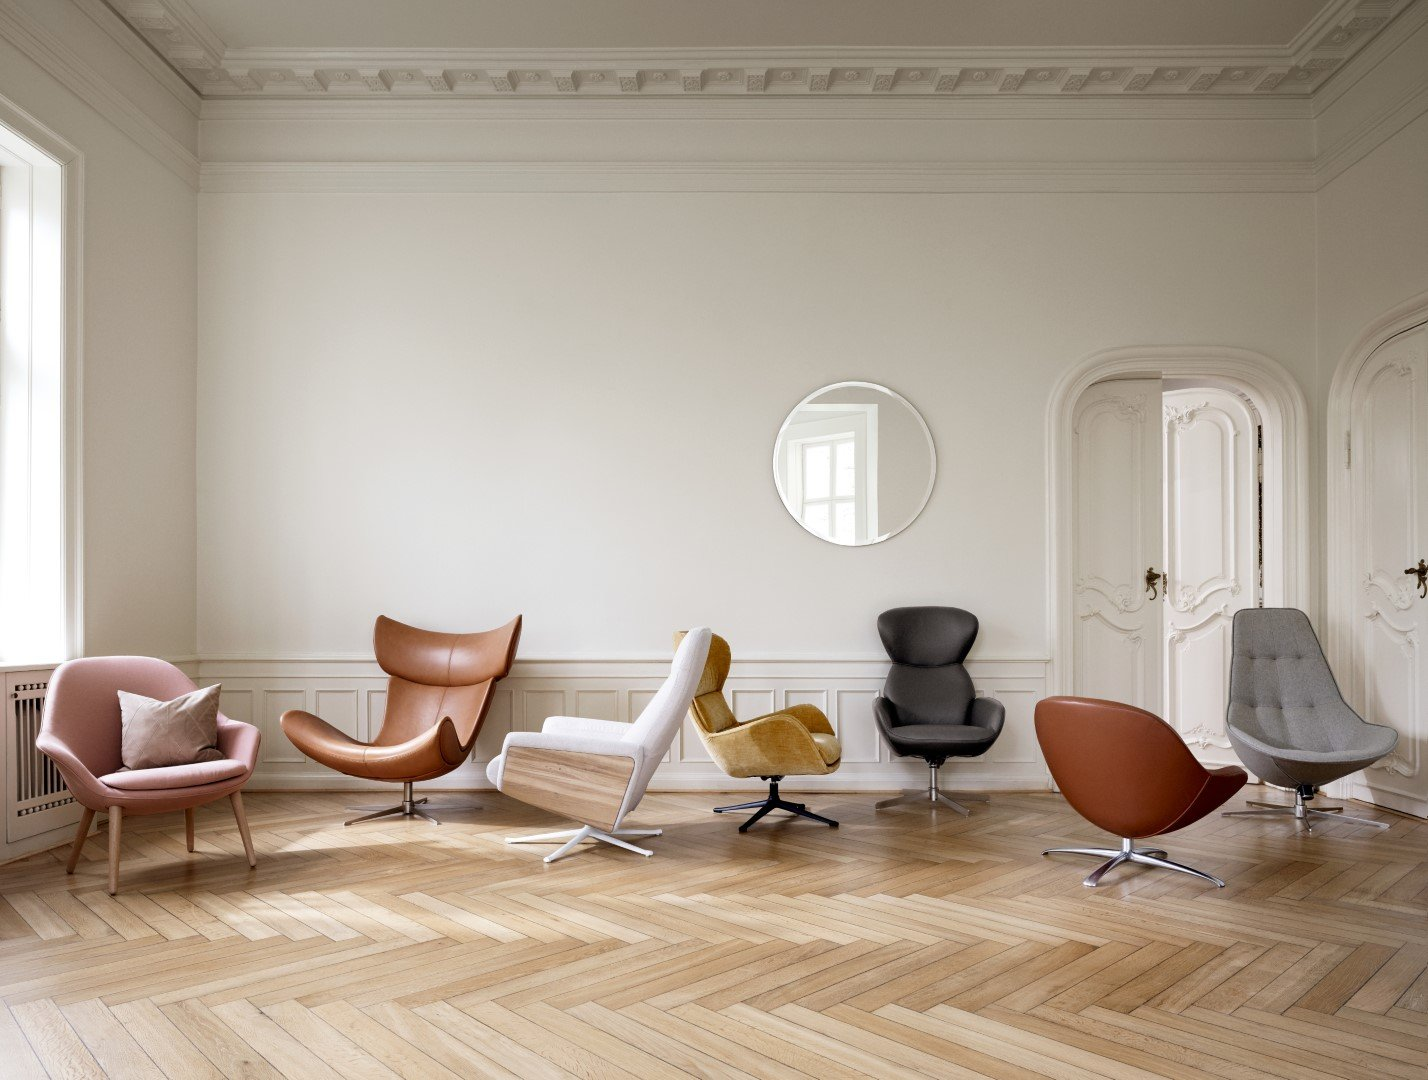 Customisable living chairs